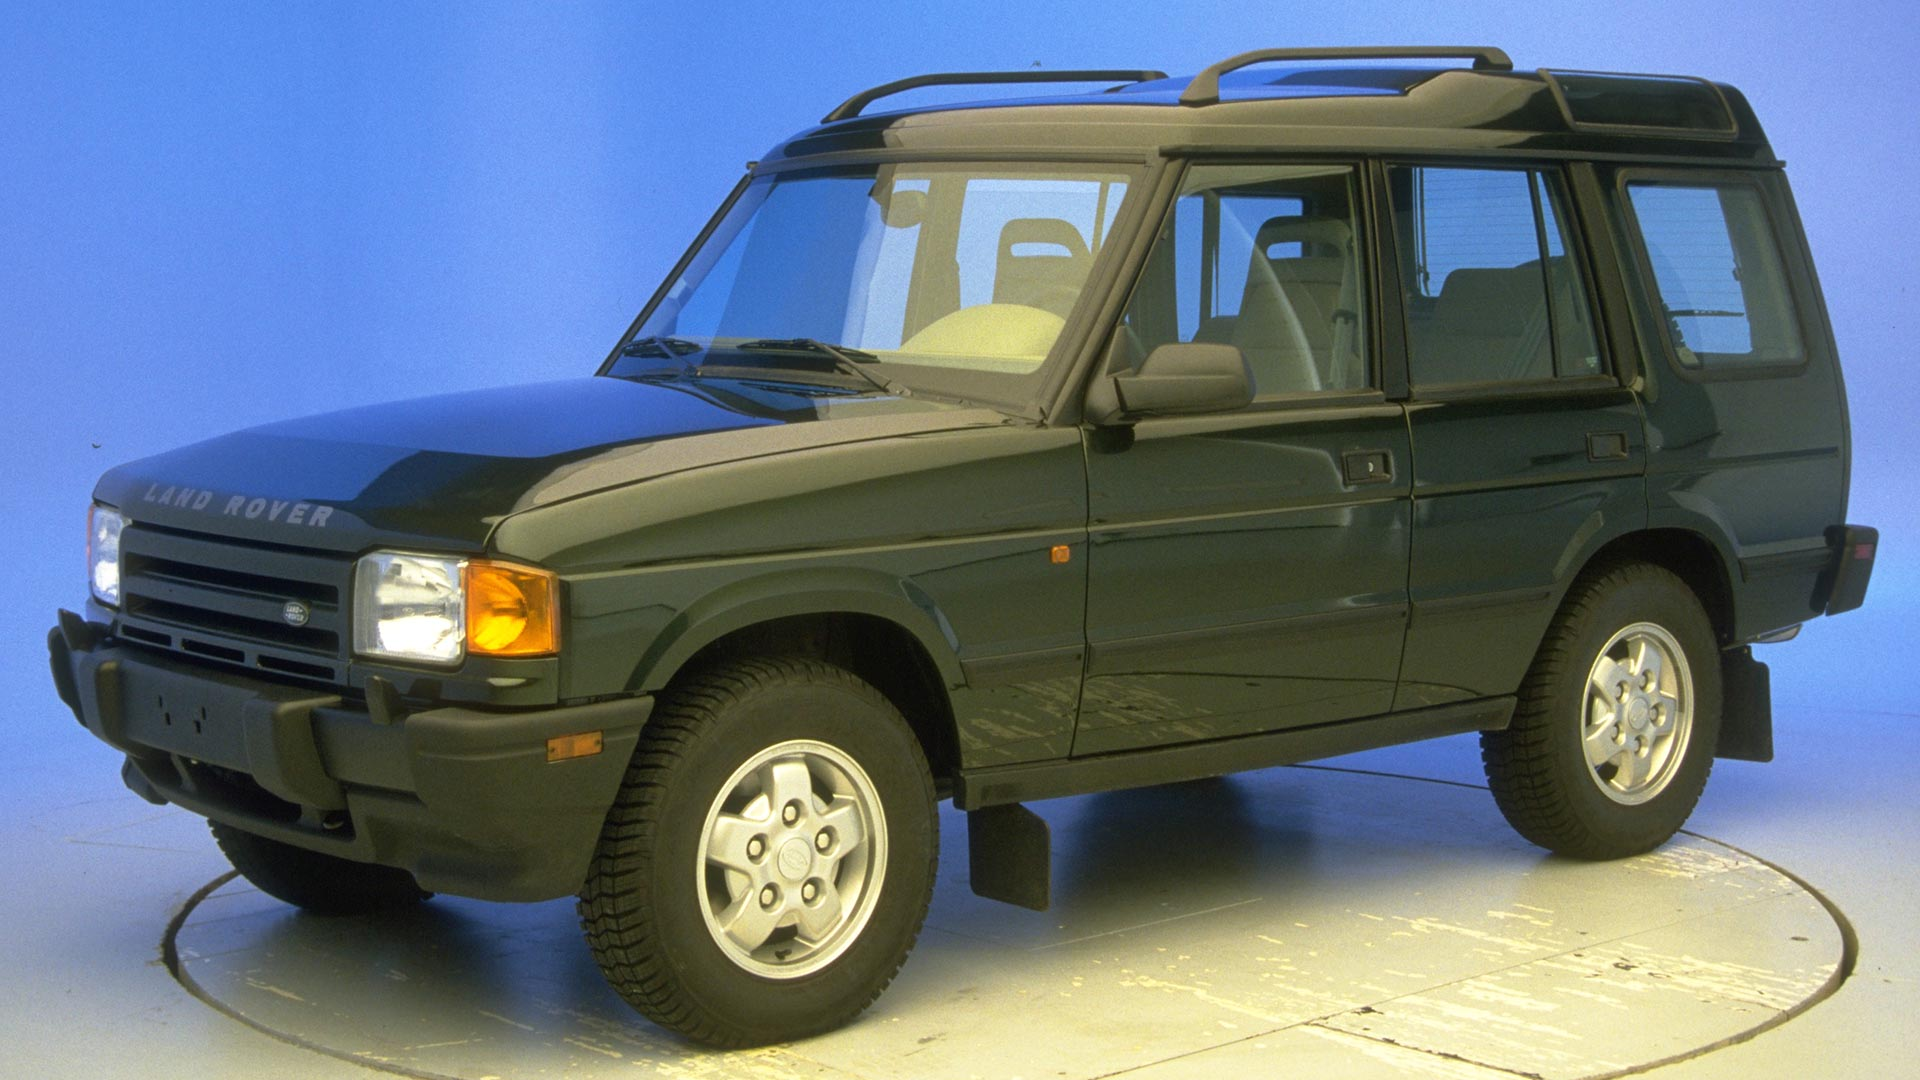 1997 Land Rover Discovery 4-door SUV